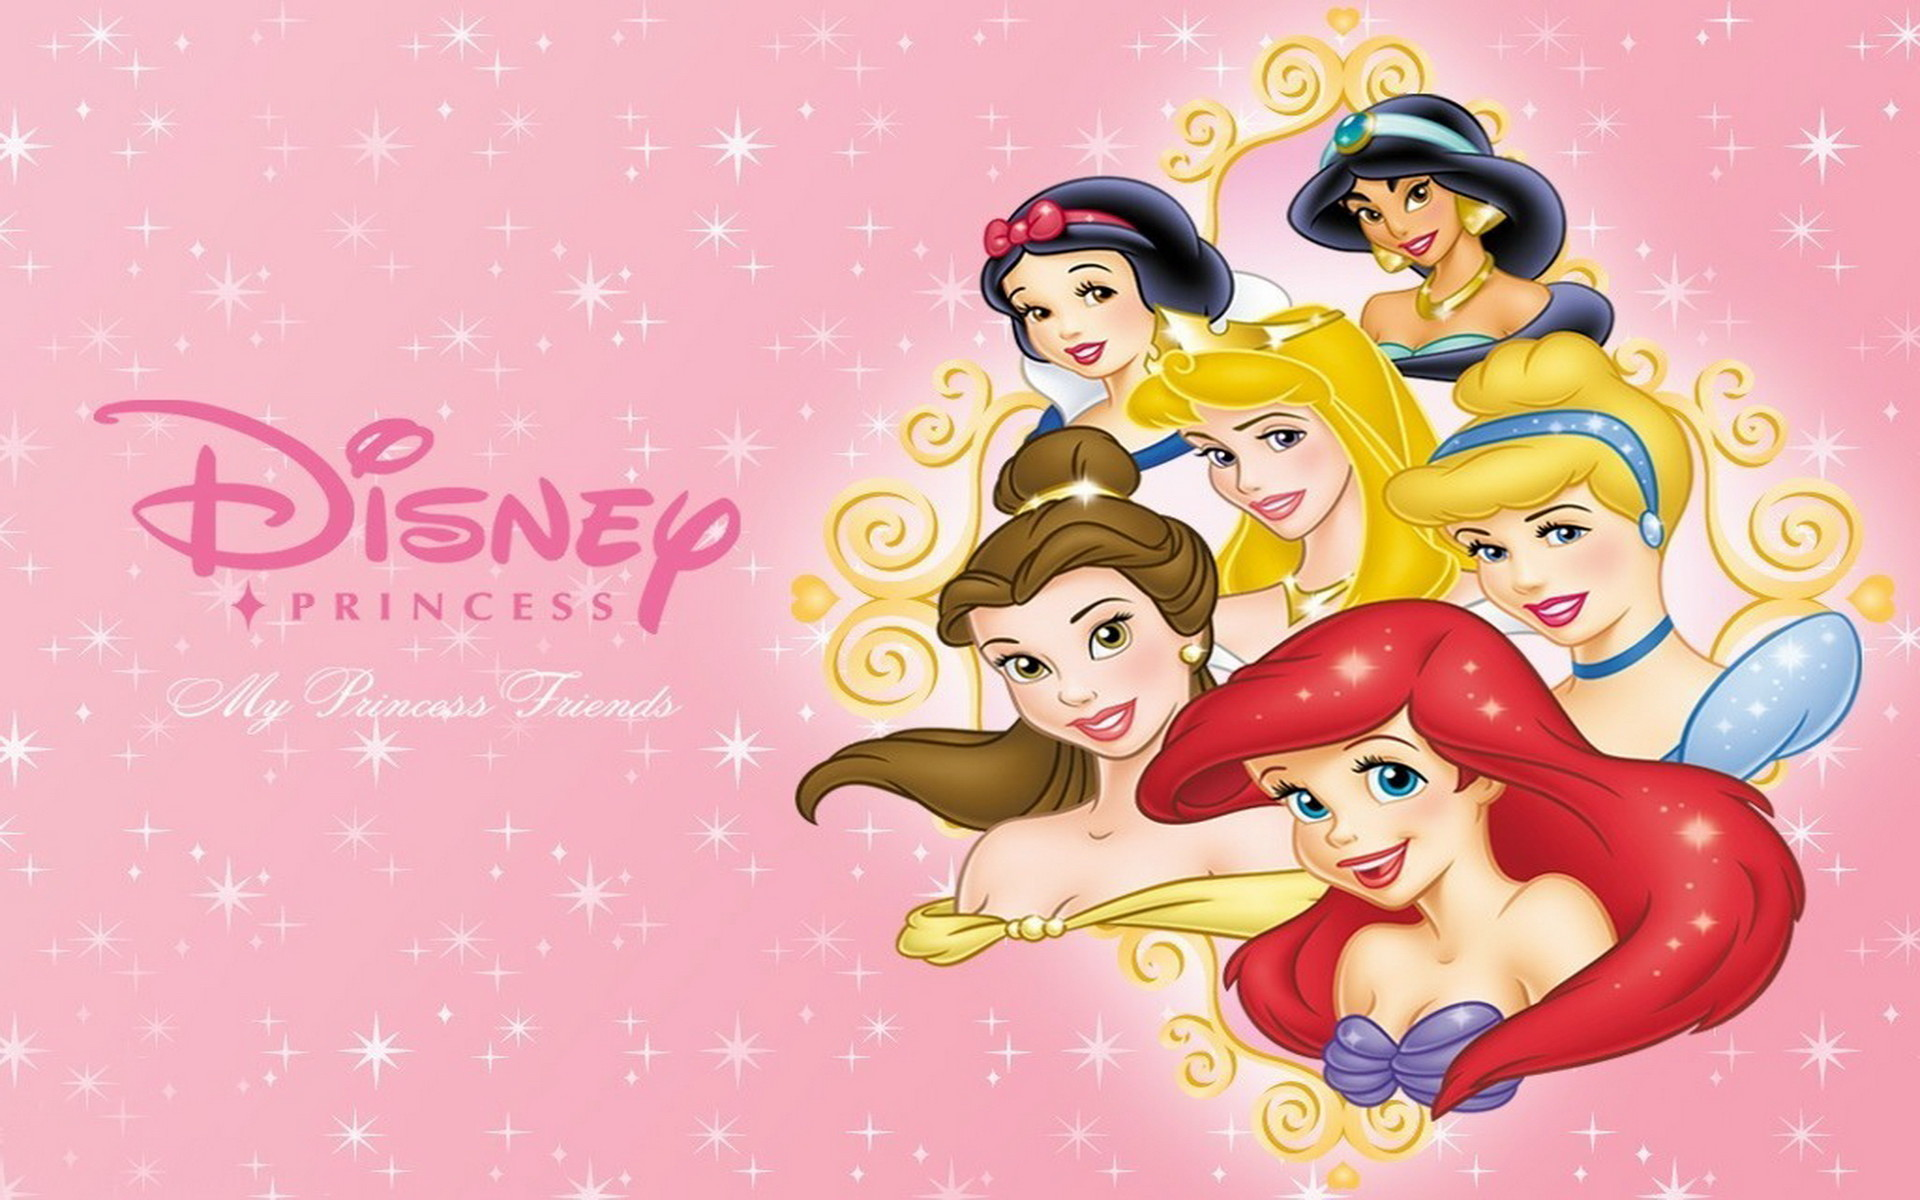 My Princess Friends Wallpapers